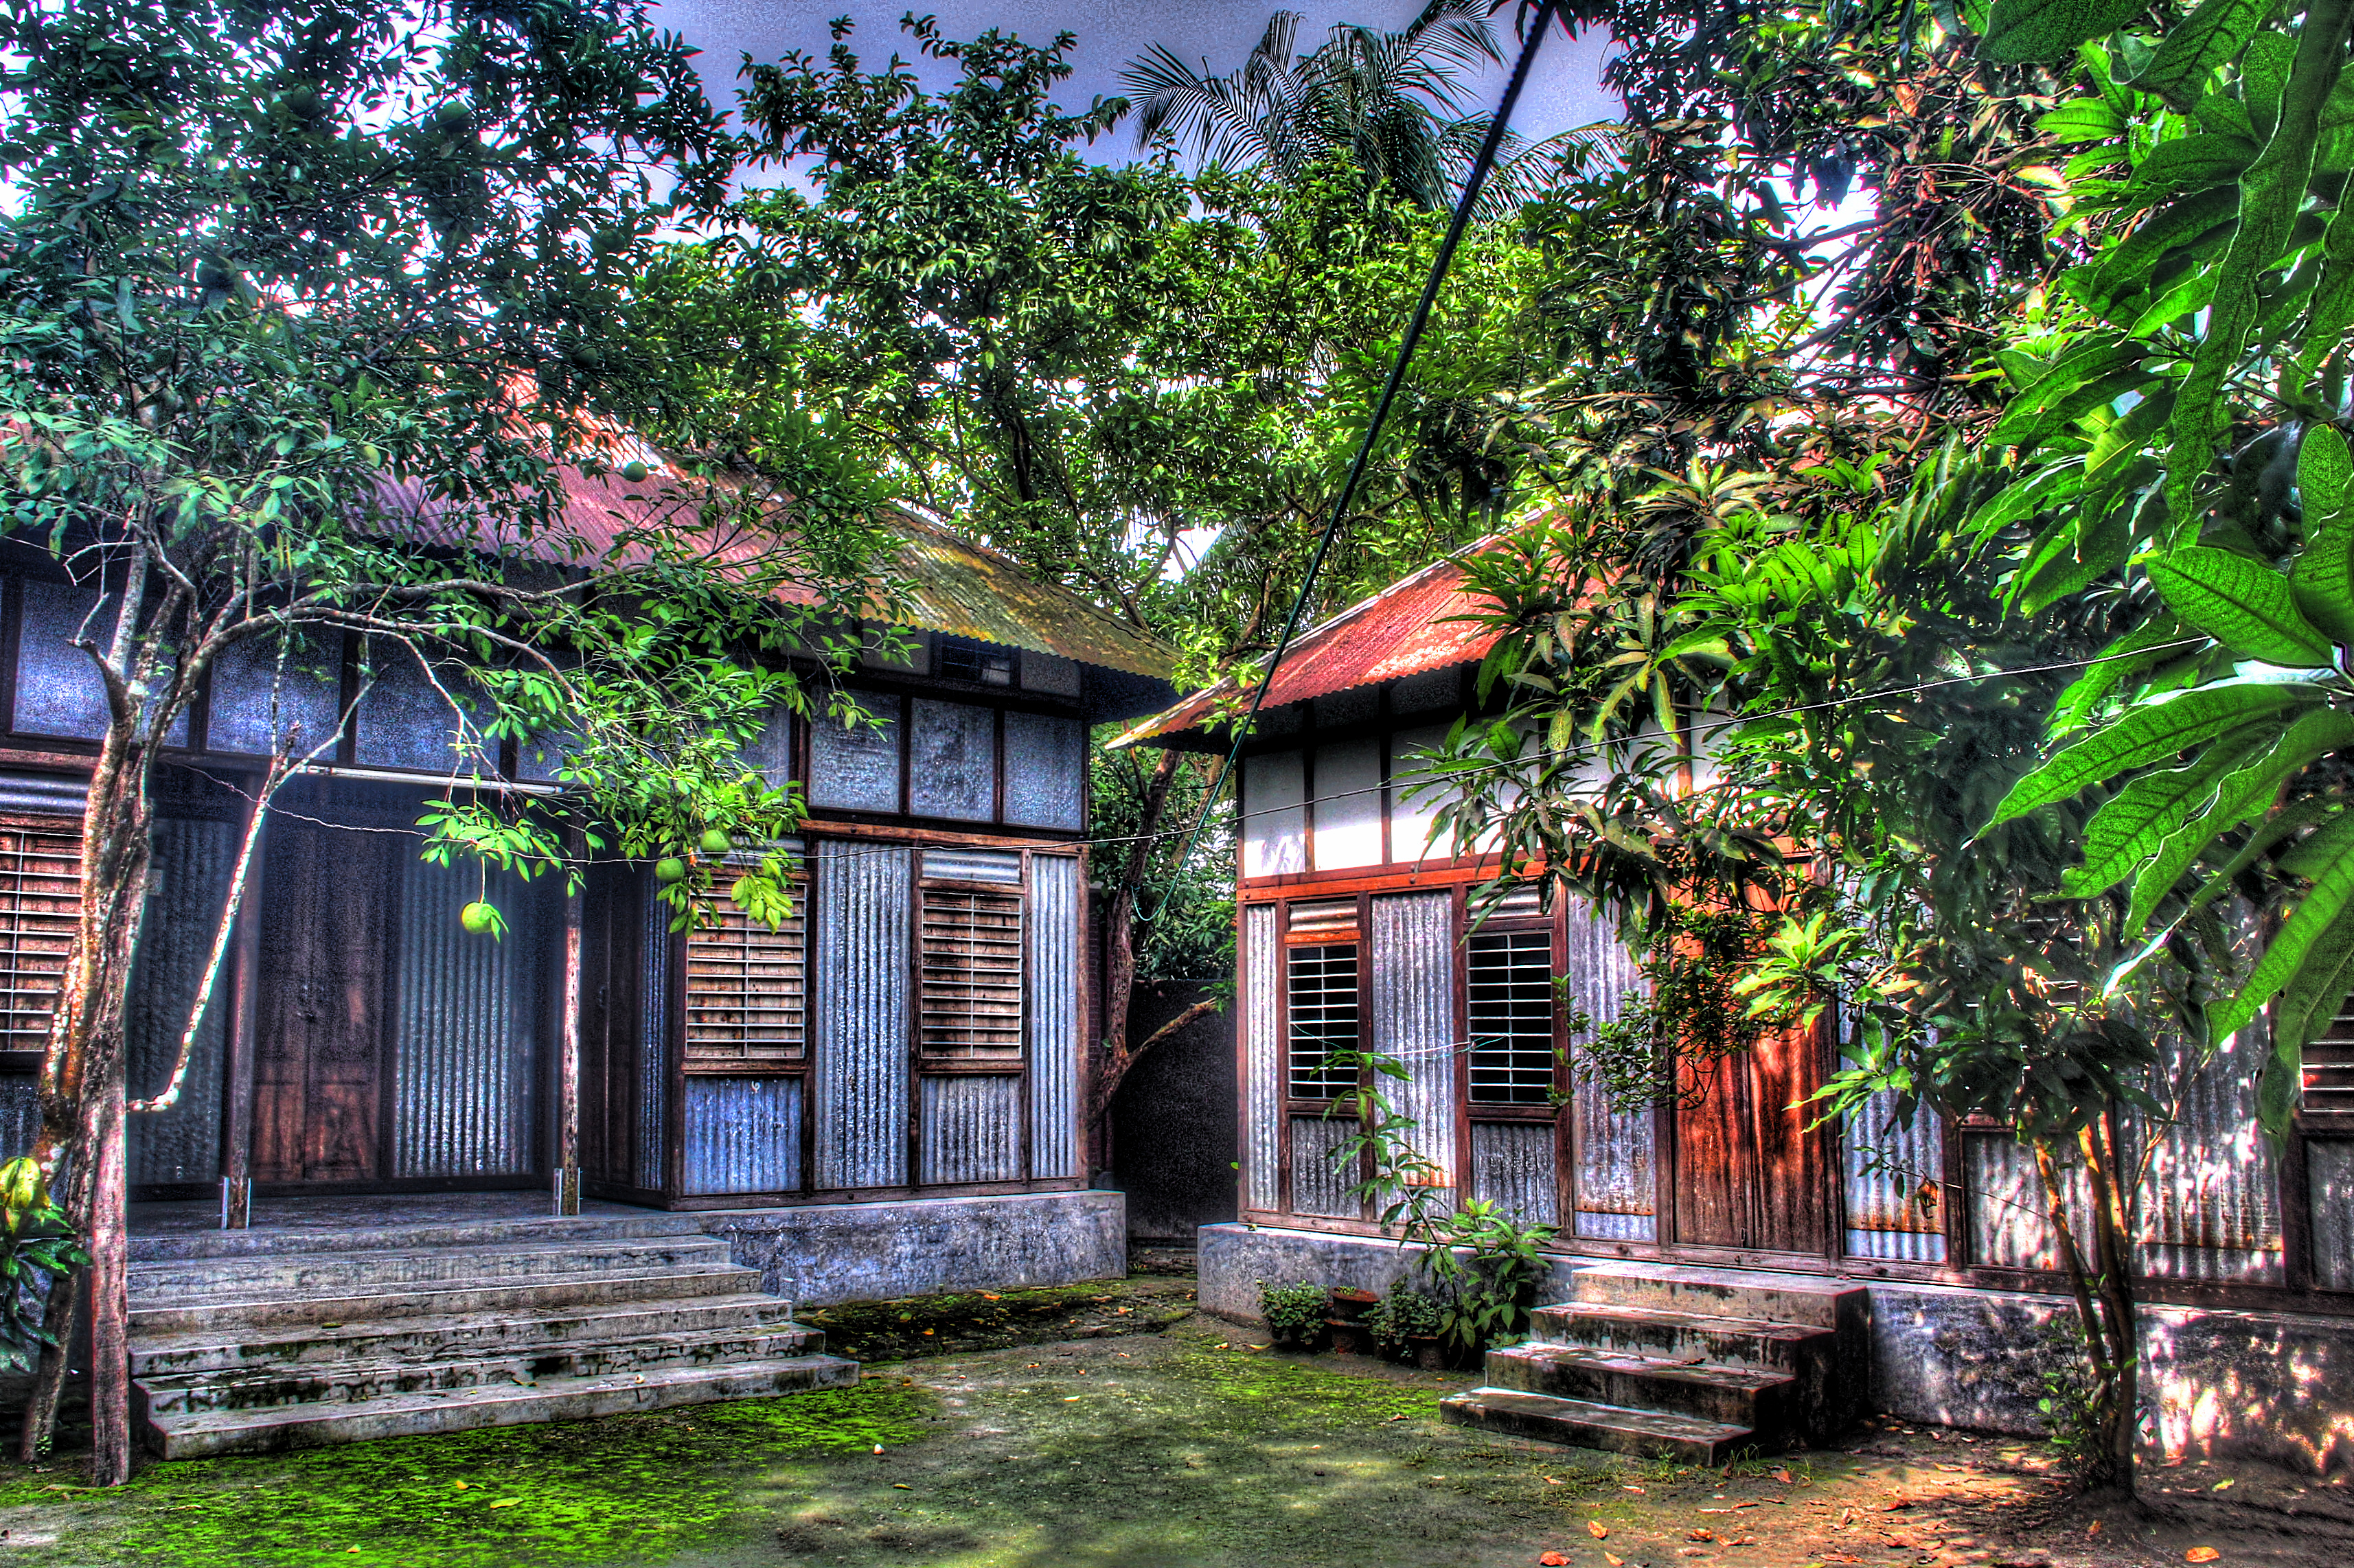 Traditional village homes in bangladesh flickr photo for Bangla house photo